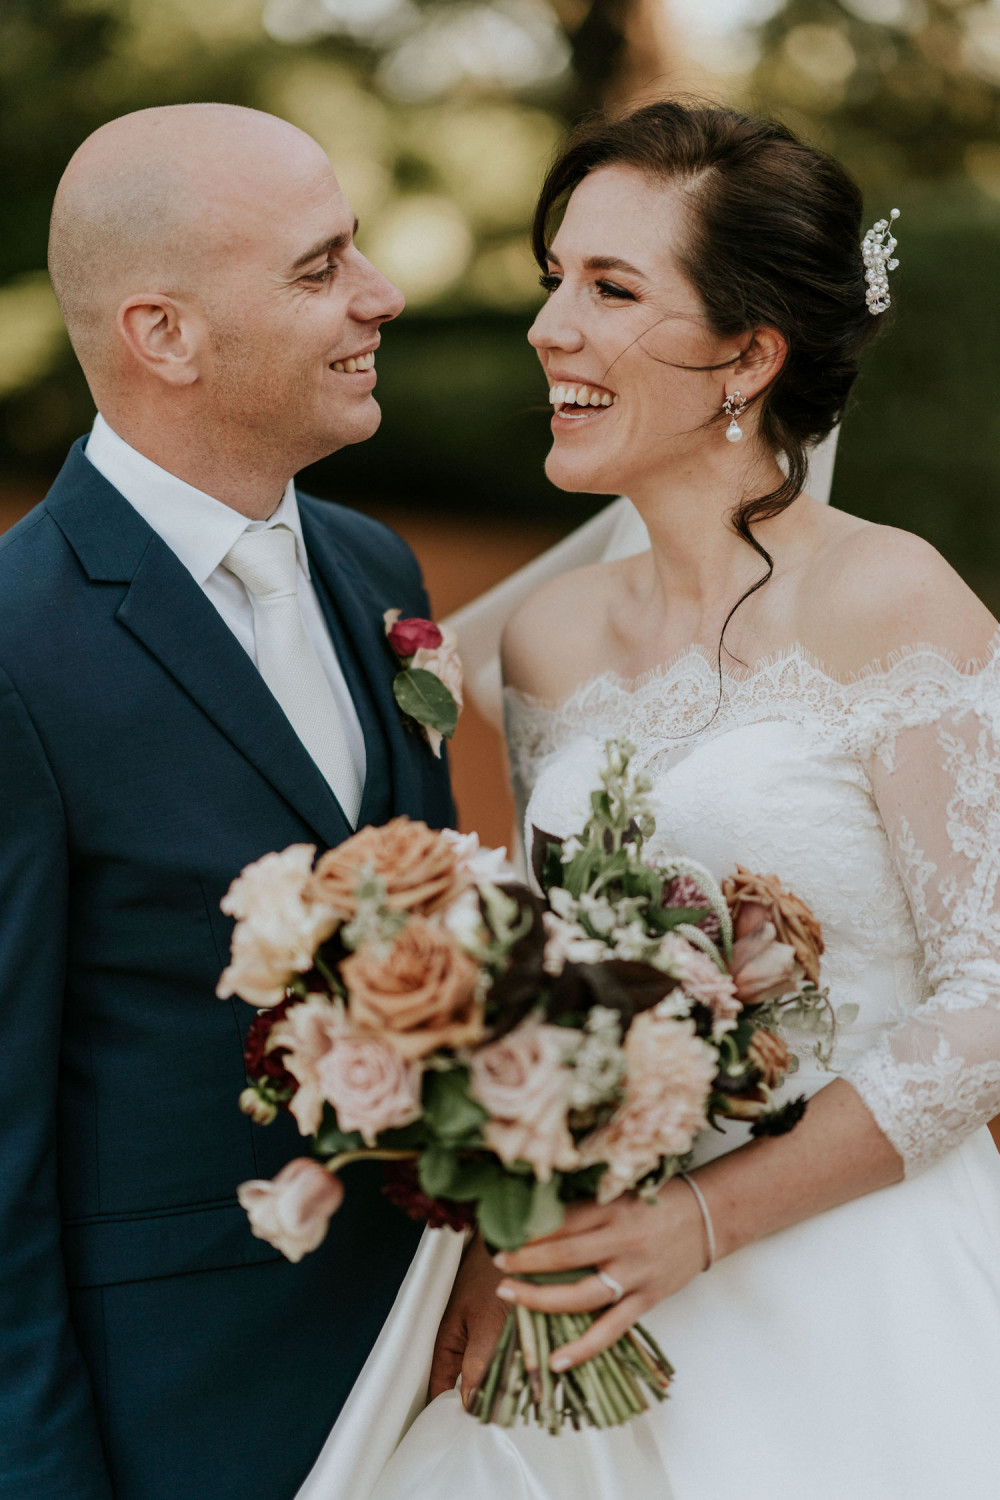 Bride and groom smiling together on their wedding day